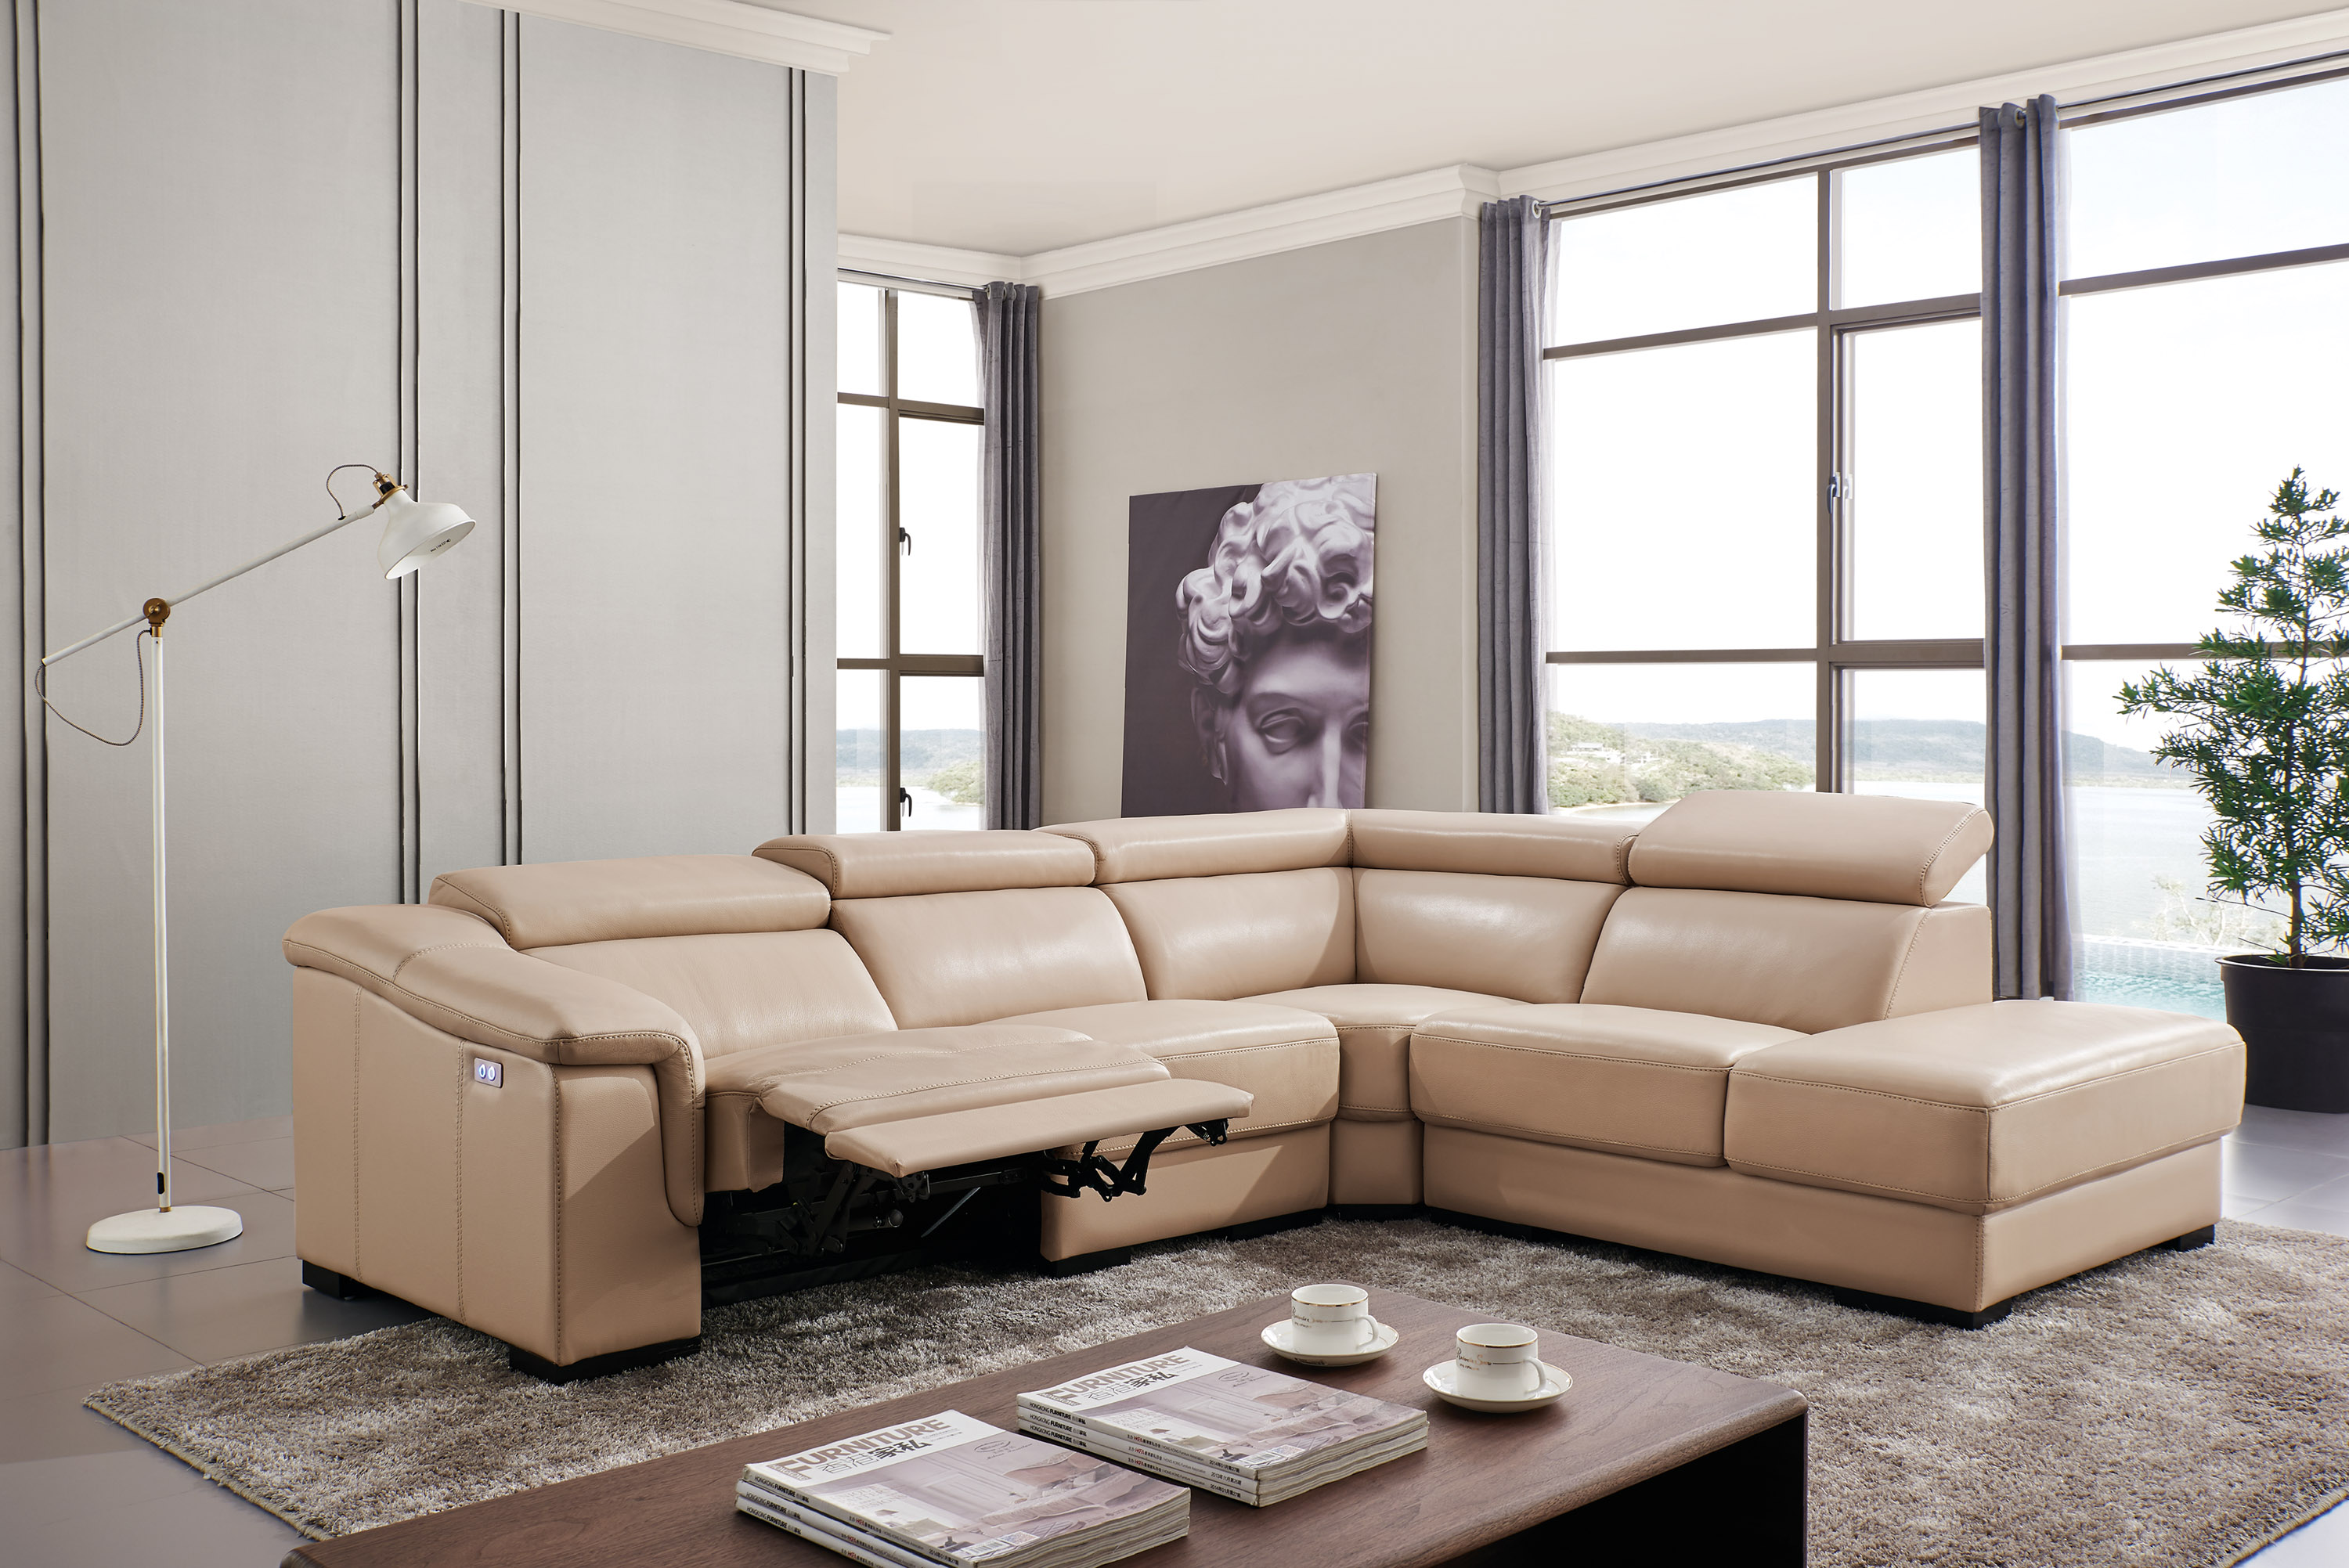 Almond Beige Soft And Welcoming Skilled Italian Craftsmanship